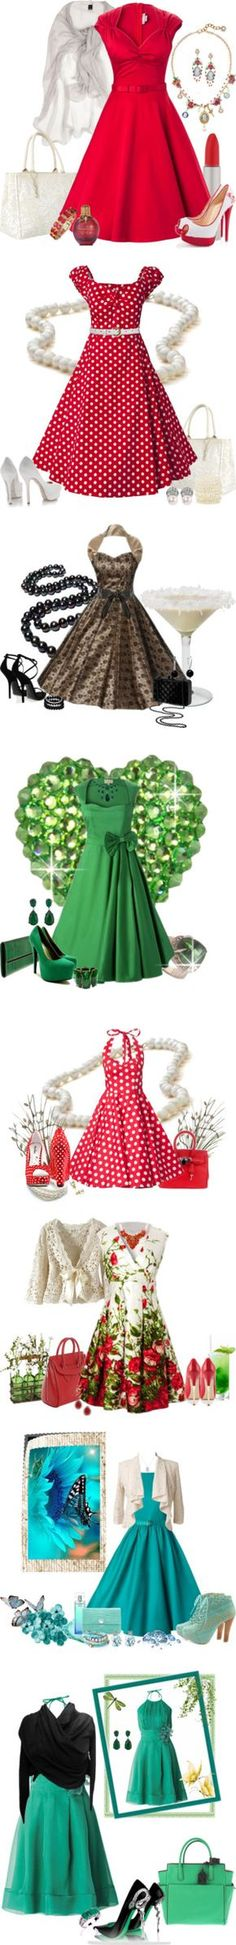 "50s inspired outfits! ""Vestidos Rodados I"" by sil-engler on Polyvore"